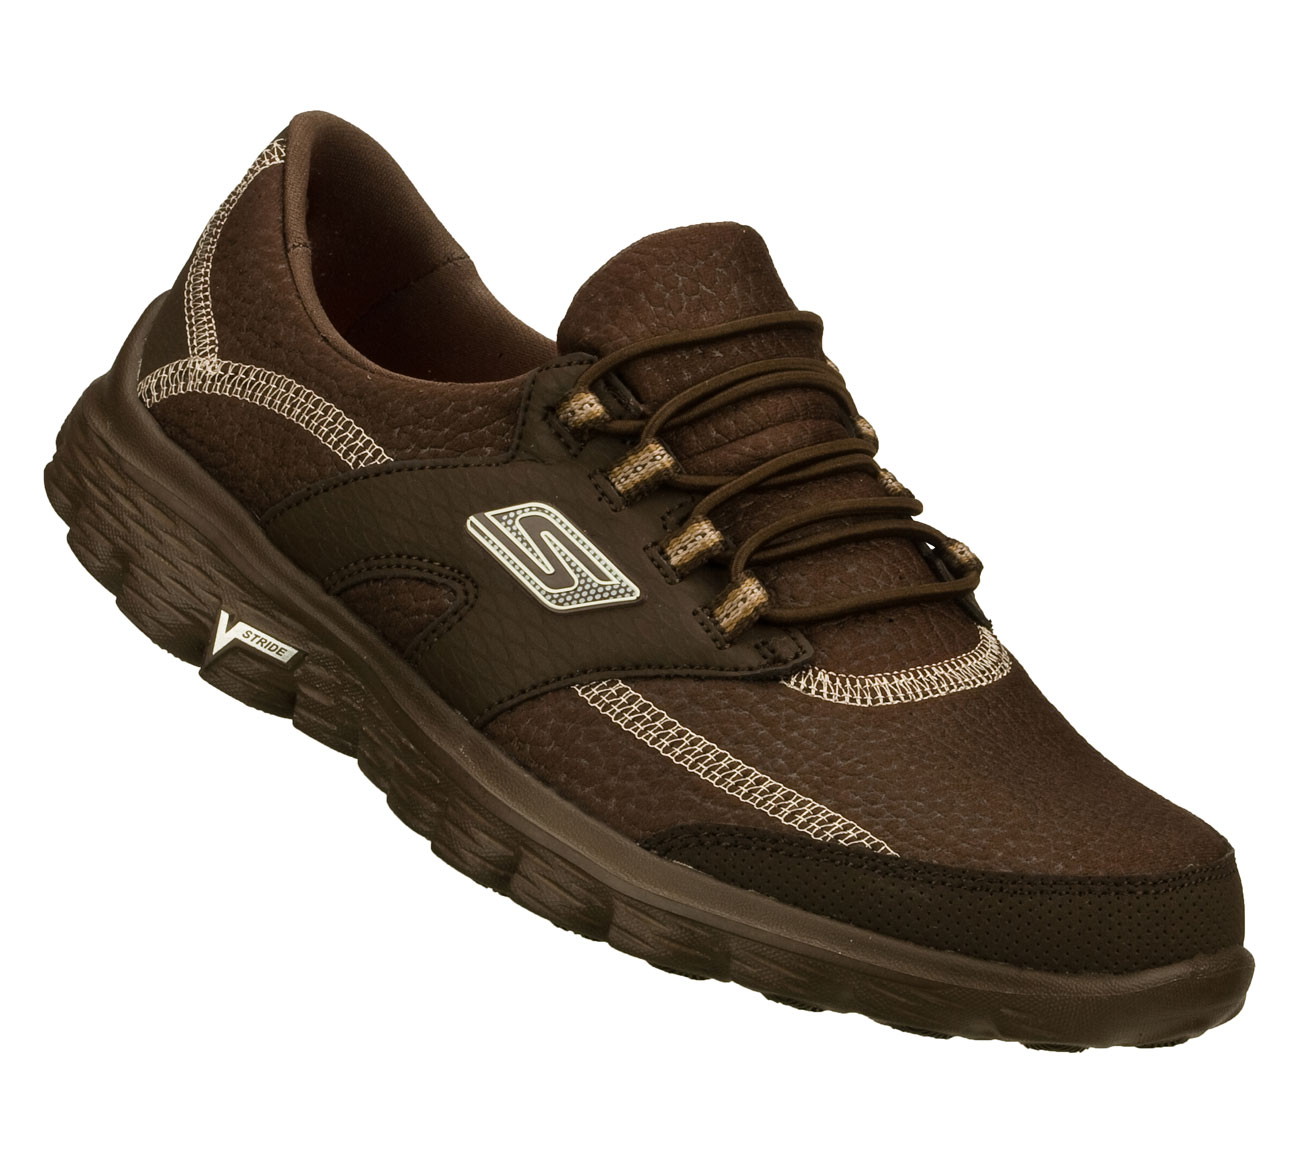 Womens Athletic Shoes Skechers Official Site 2016